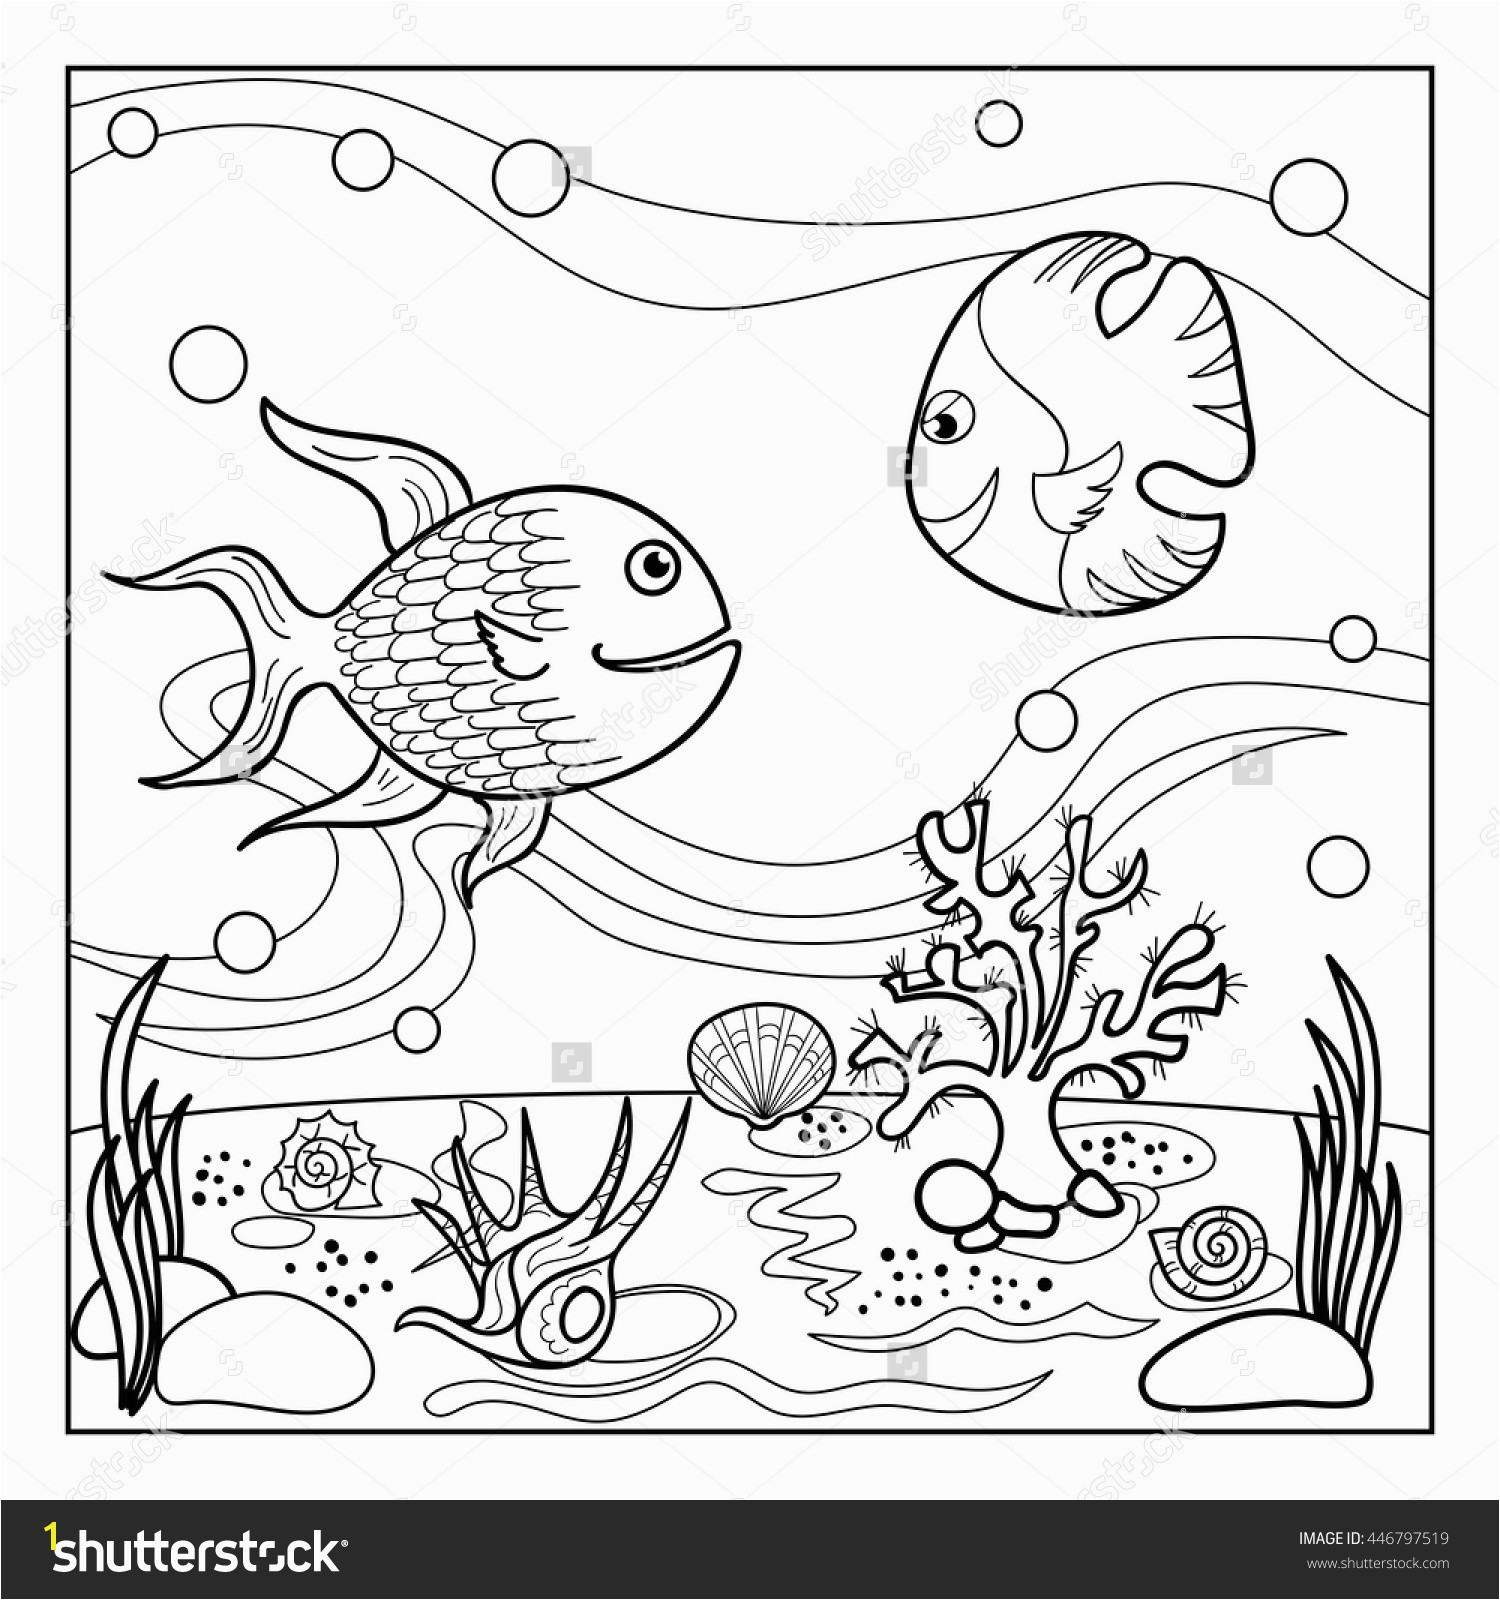 Idiom Coloring Pages Mangle Coloring Pages New Witch Coloring Page Inspirational Crayola